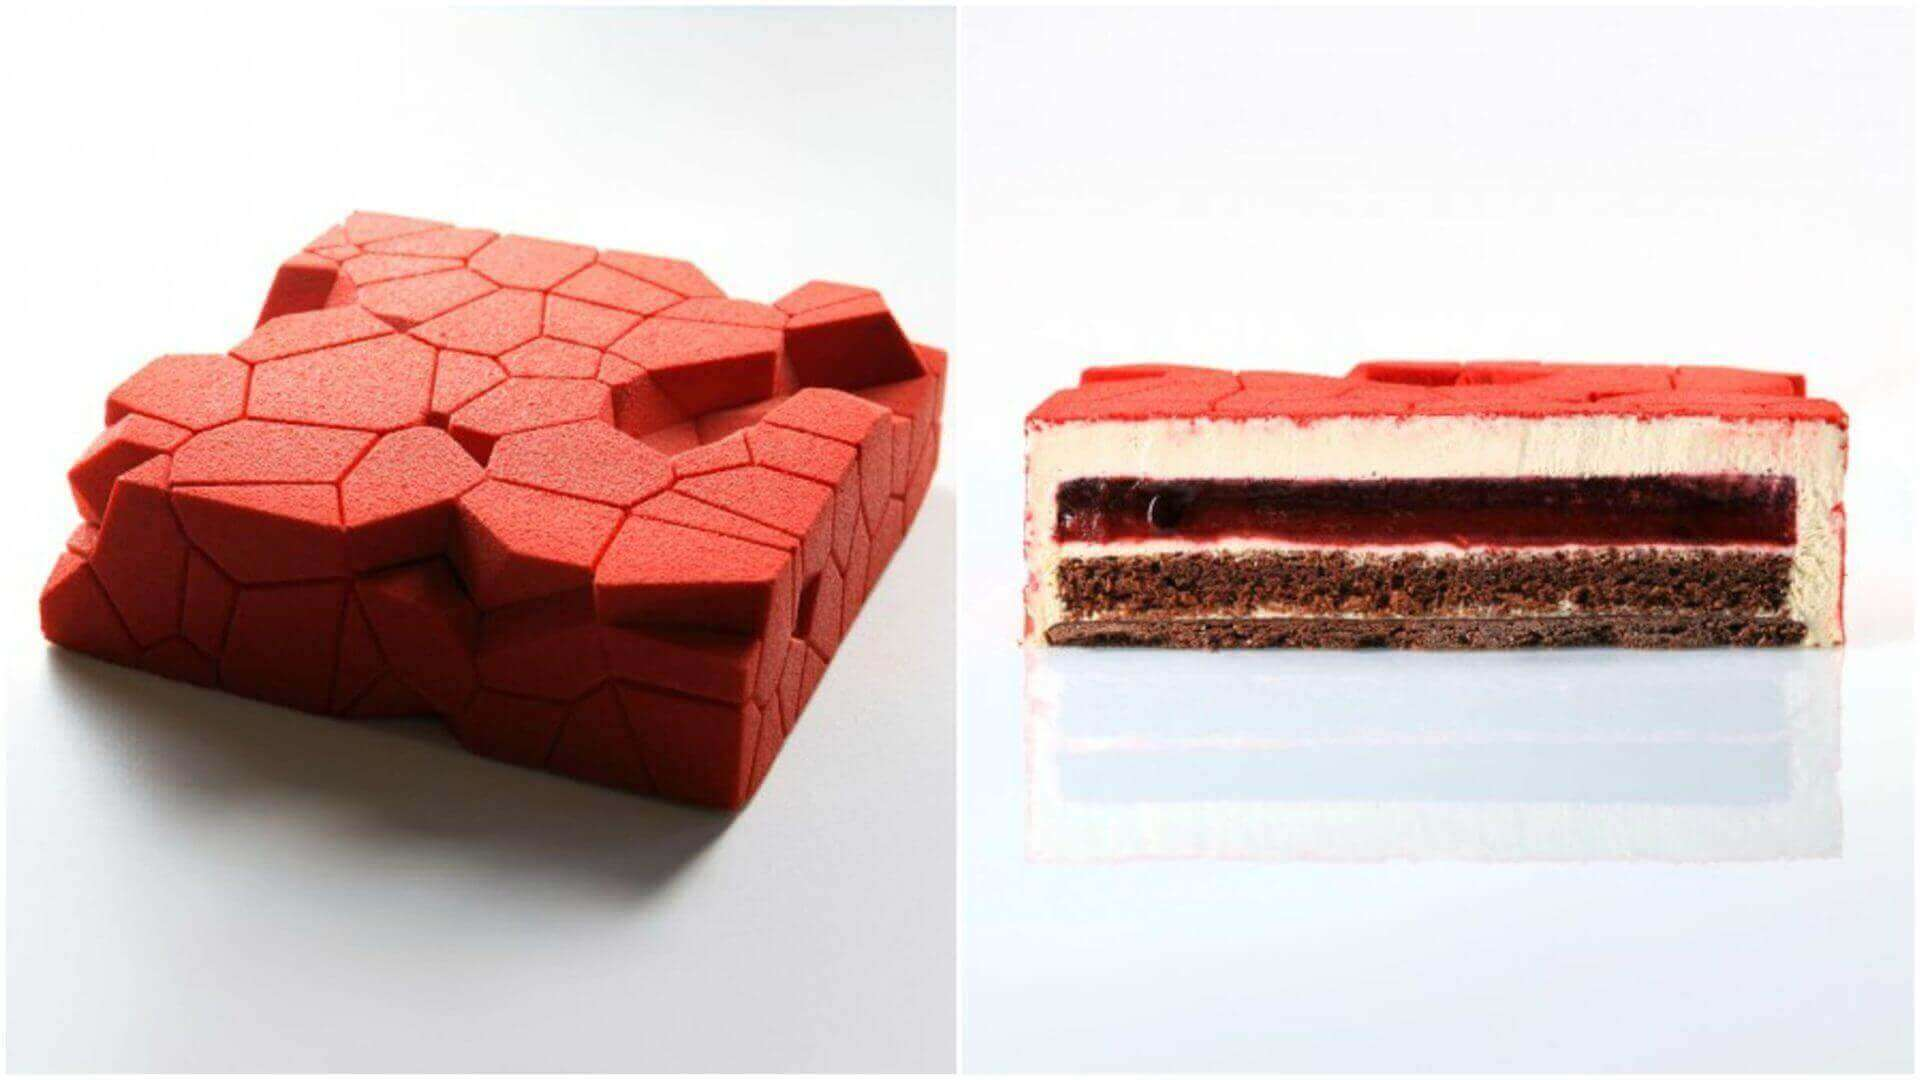 Dinara Kasko Creates New Pieces of Pastry Art with 3D Printed Cake Molds | All3DP